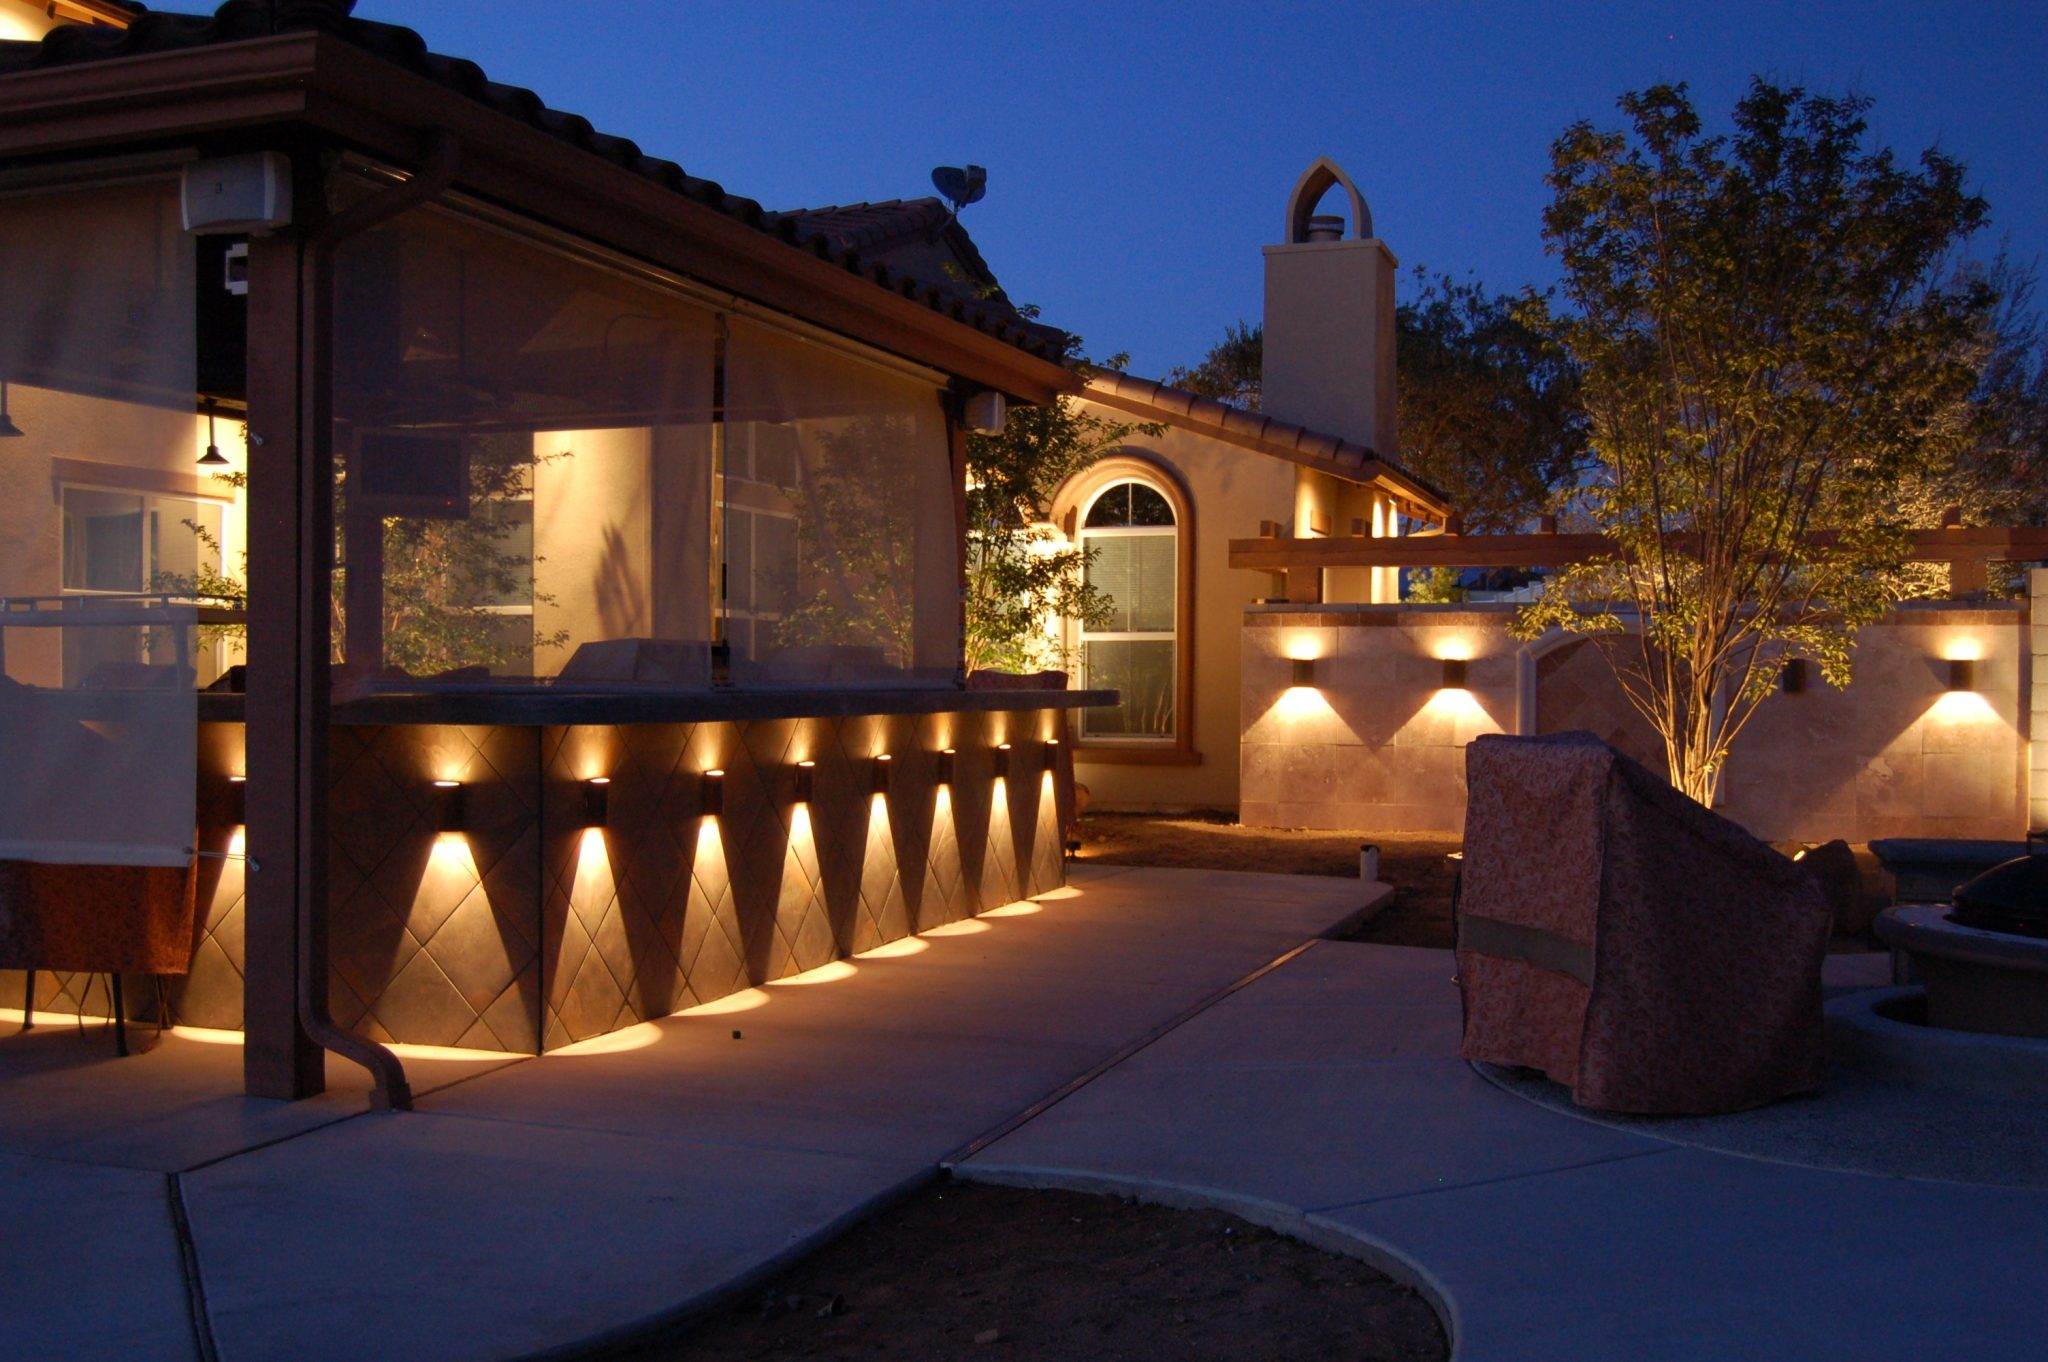 Landscape lighting maintenance tips avoid costly repairs install landscape lighting maintenance aloadofball Choice Image